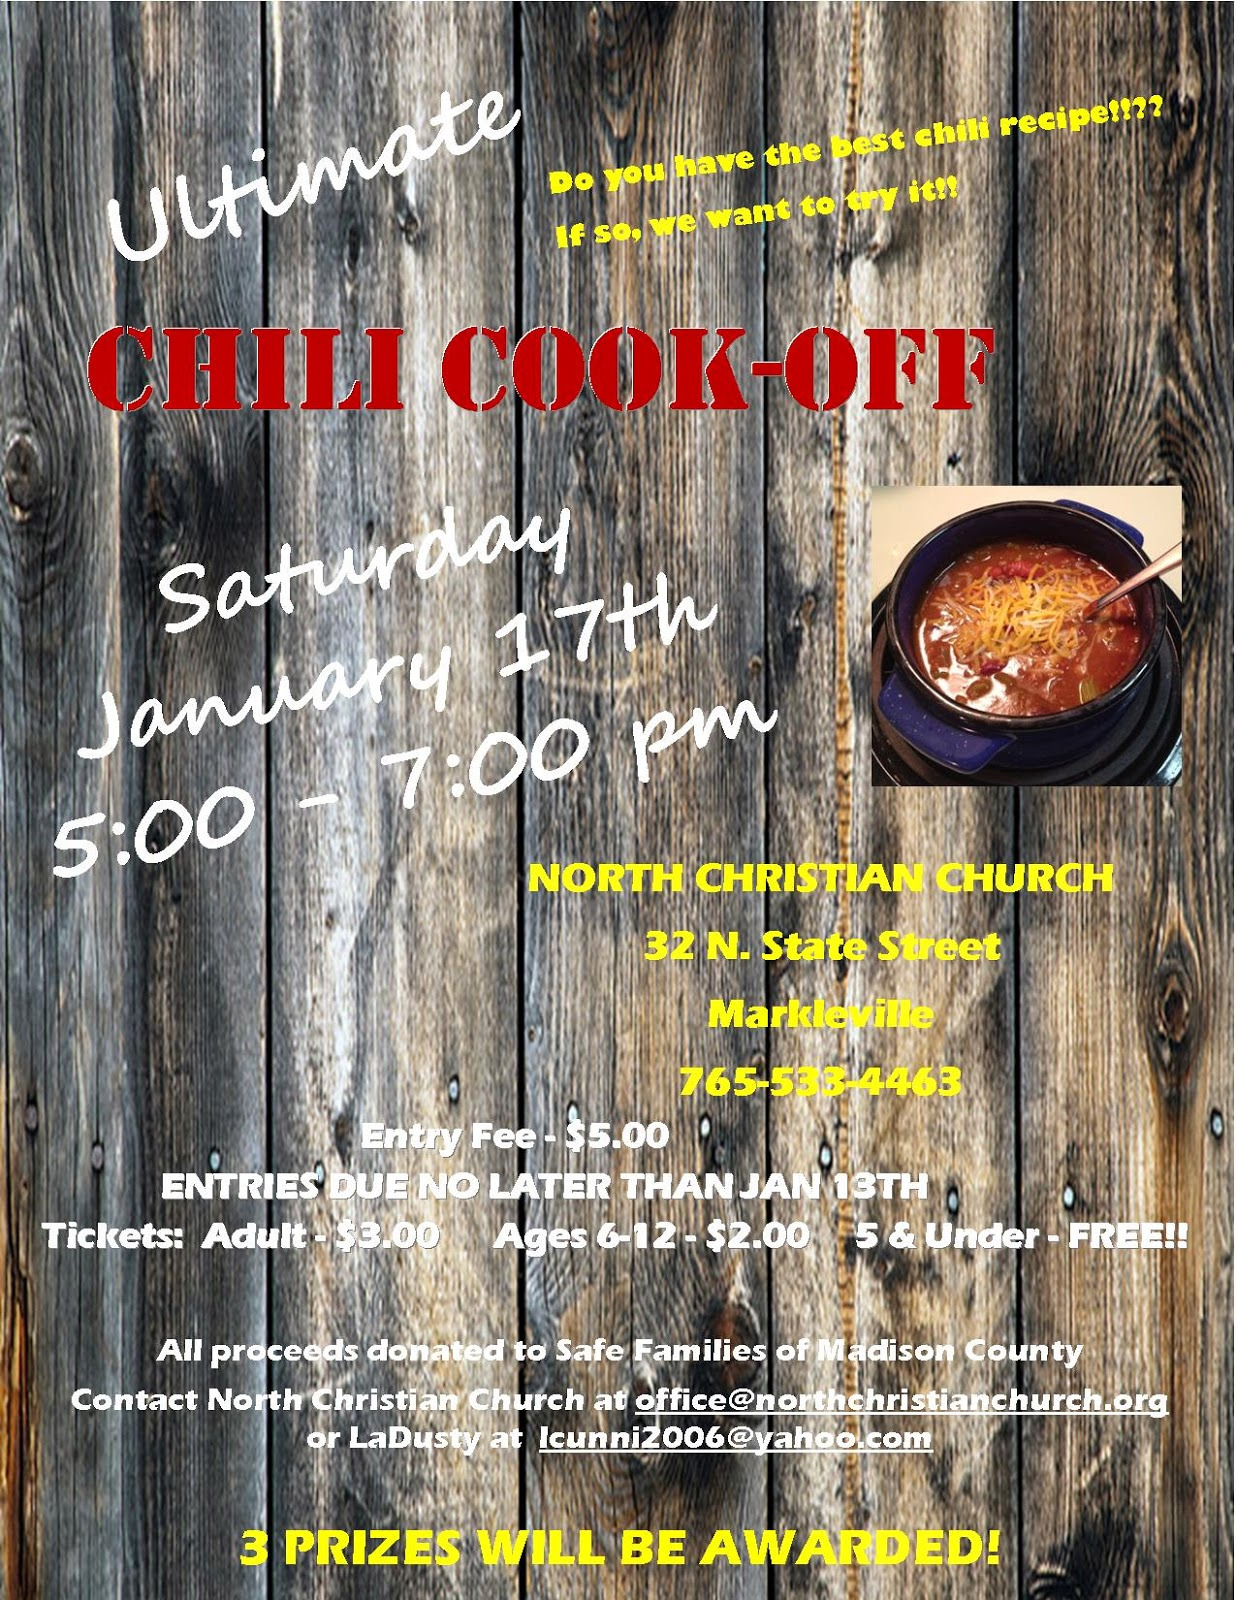 Indiana madison county markleville - Chili Cook Off Sffc Madison County Fundraiser January 17 5 00 7 00 Pm Markleville North Christian Church Adults 3 Kids 2 Ages 5 And Under Free